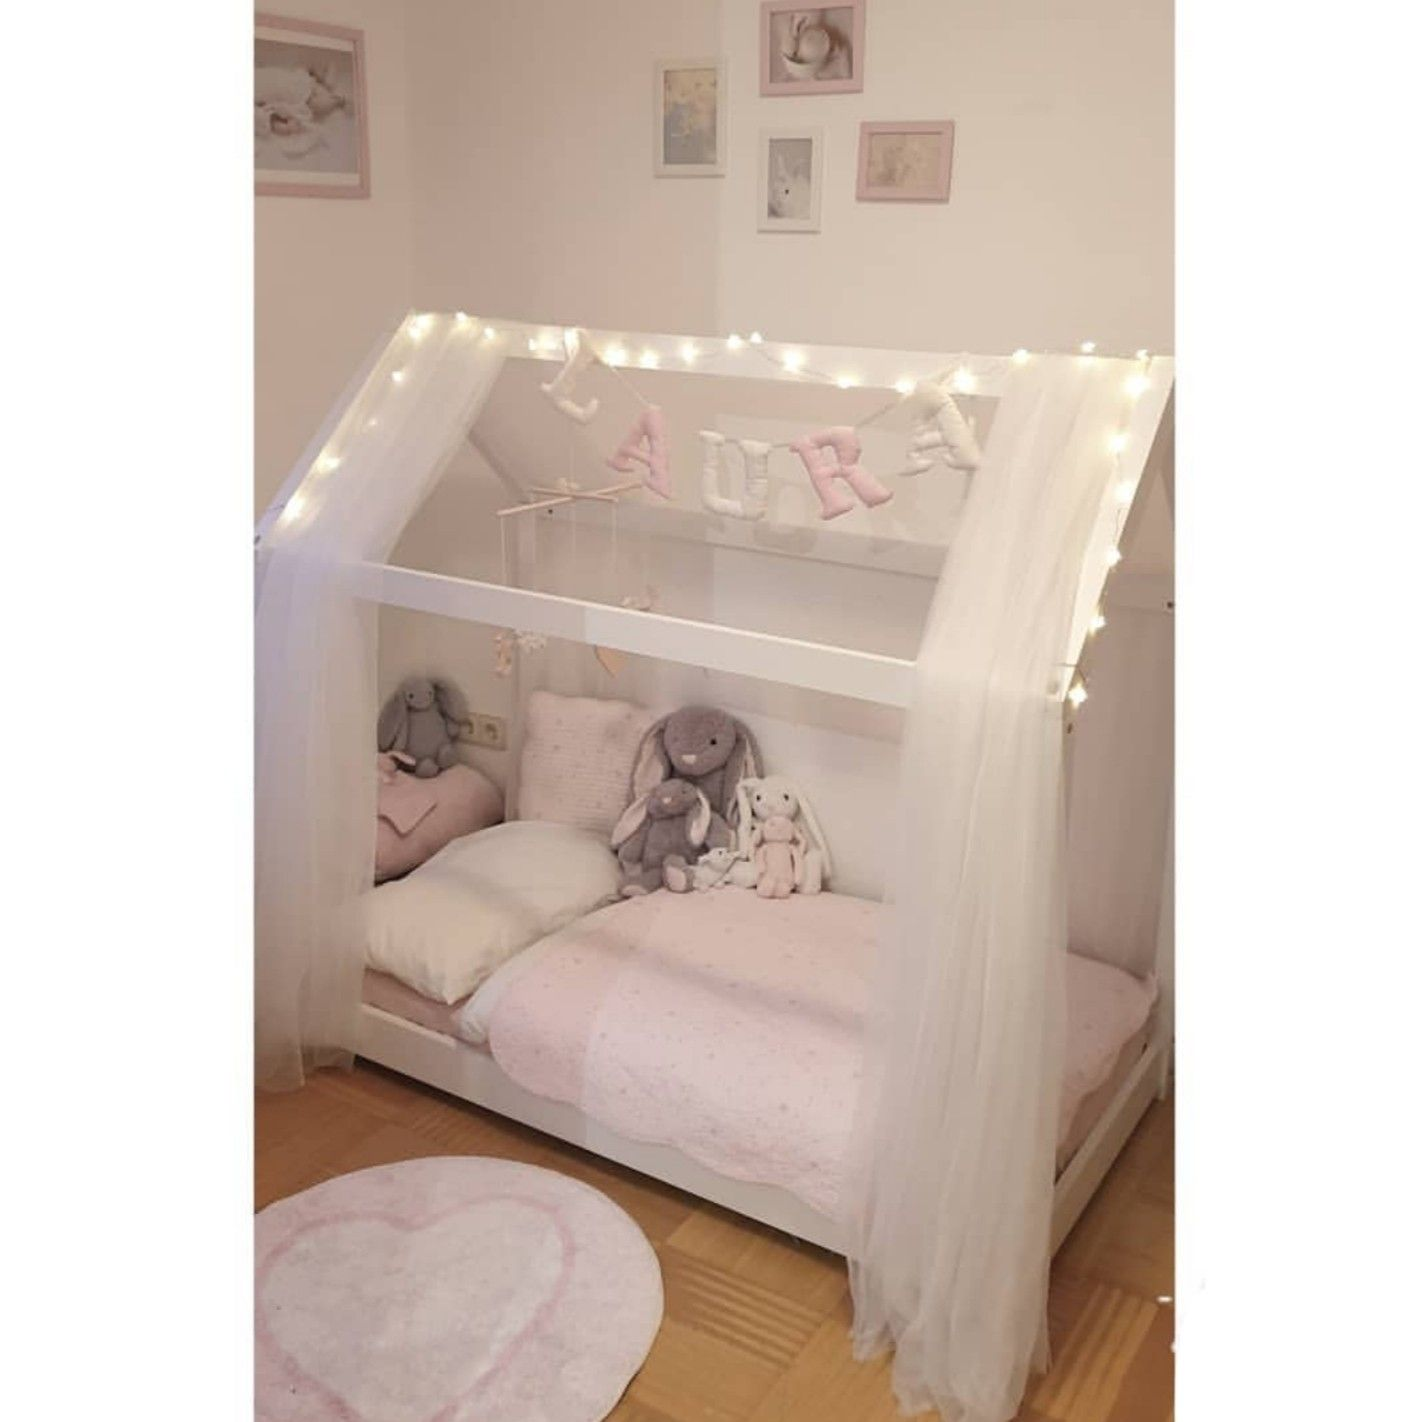 #girlbed #hausbed #bed #pink #girlsroom